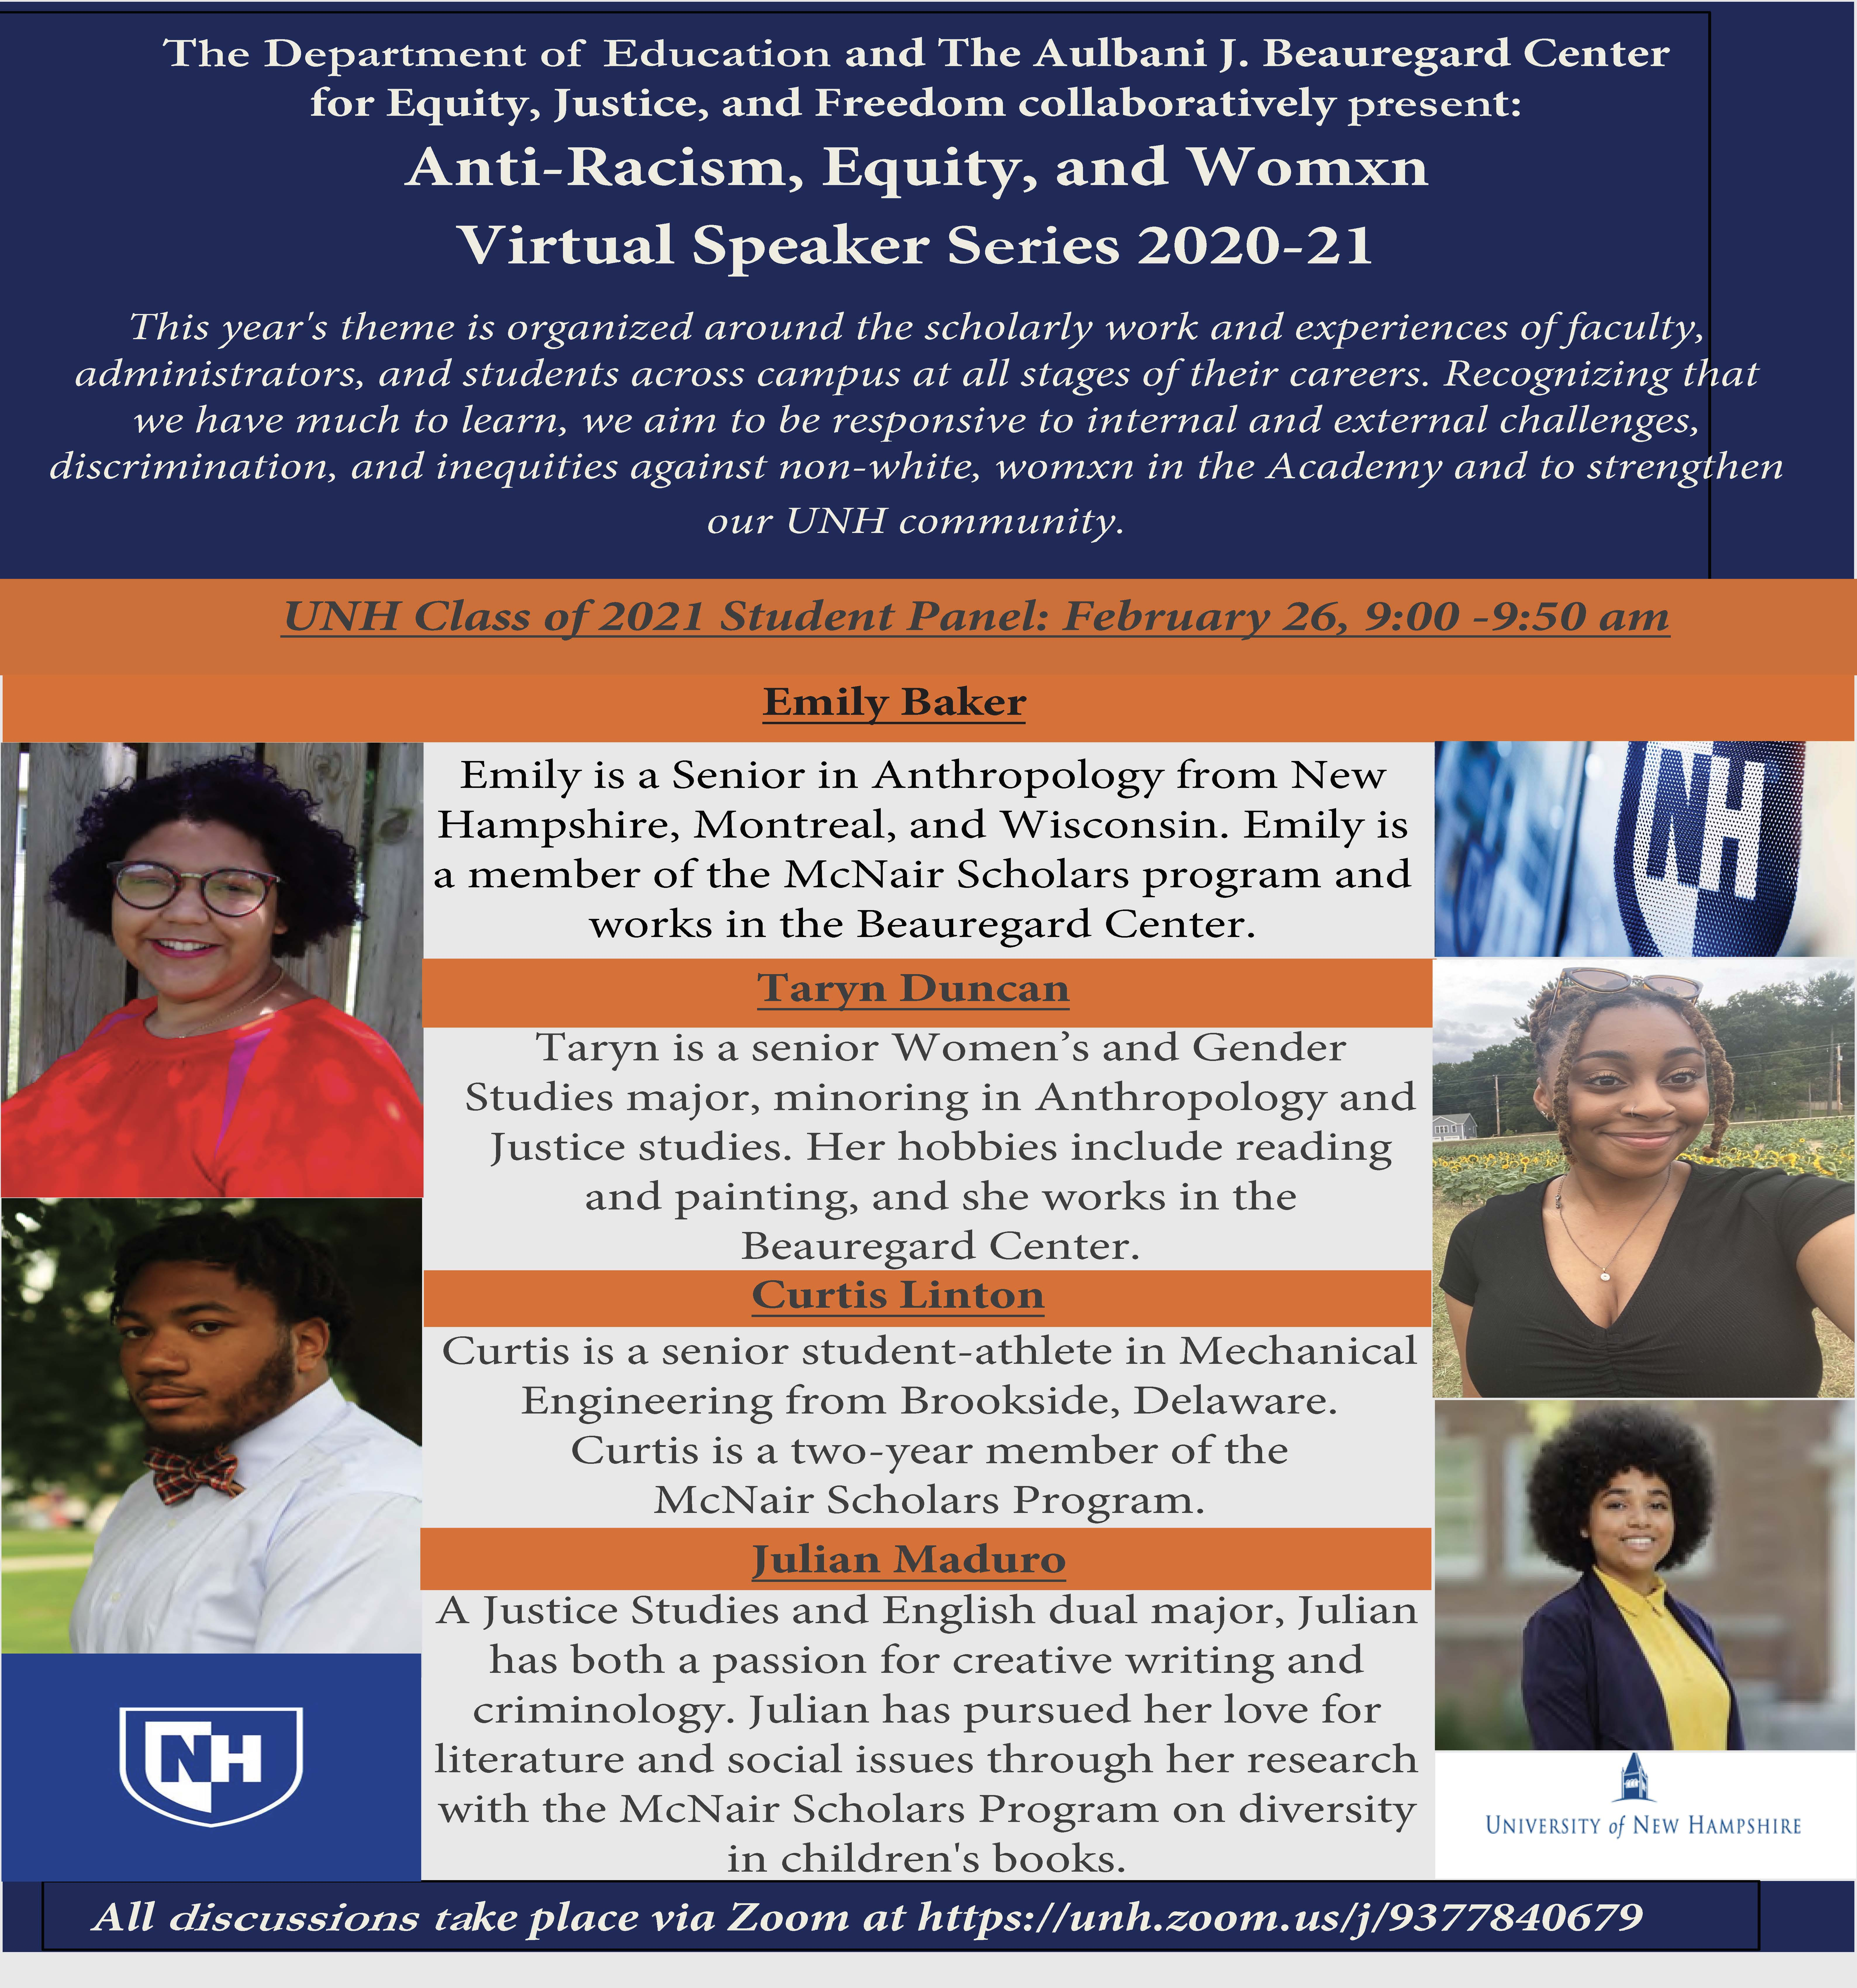 Anti-Racism, Equity, and Womxn Virtual Speaker Series image.